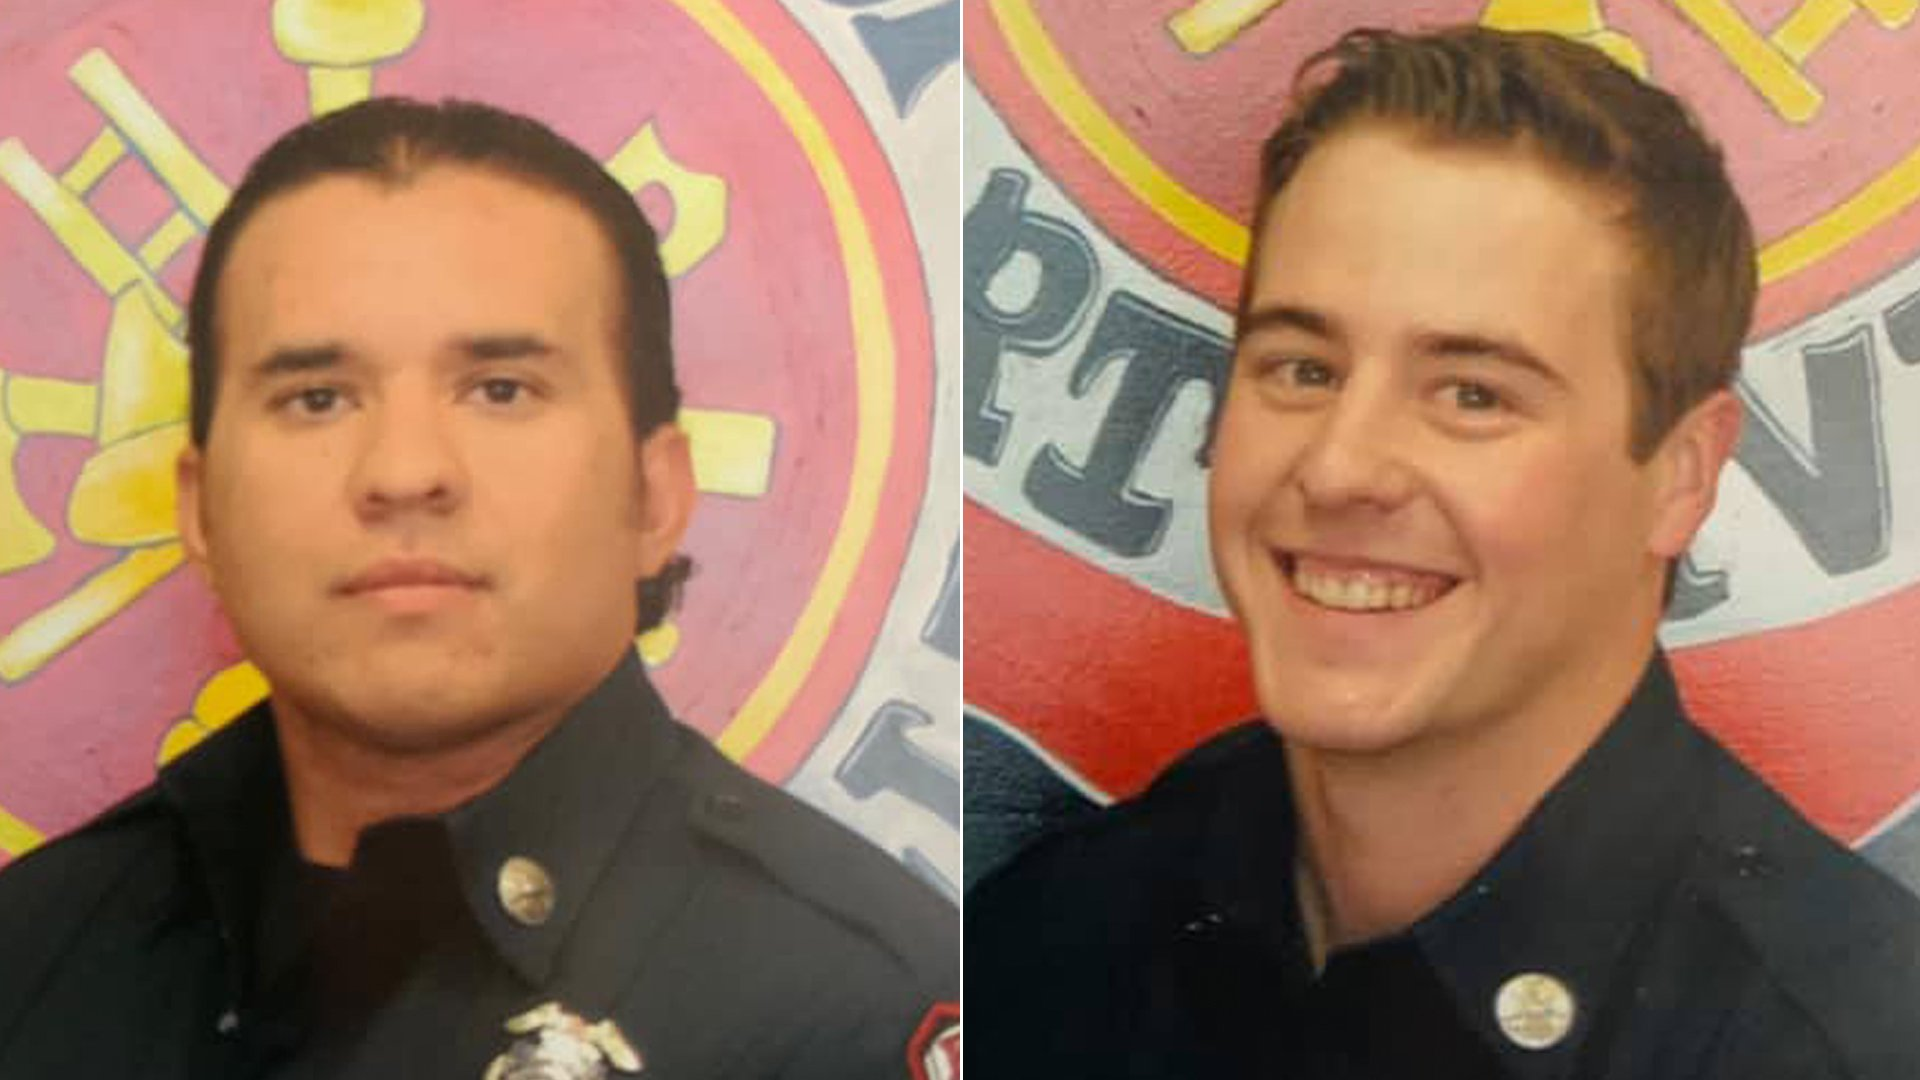 Porterville Fire Department Capt. Raymond Figueroa, left, and firefighter Patrick Jones appear in photos released by the agency on Feb. 19 2020.